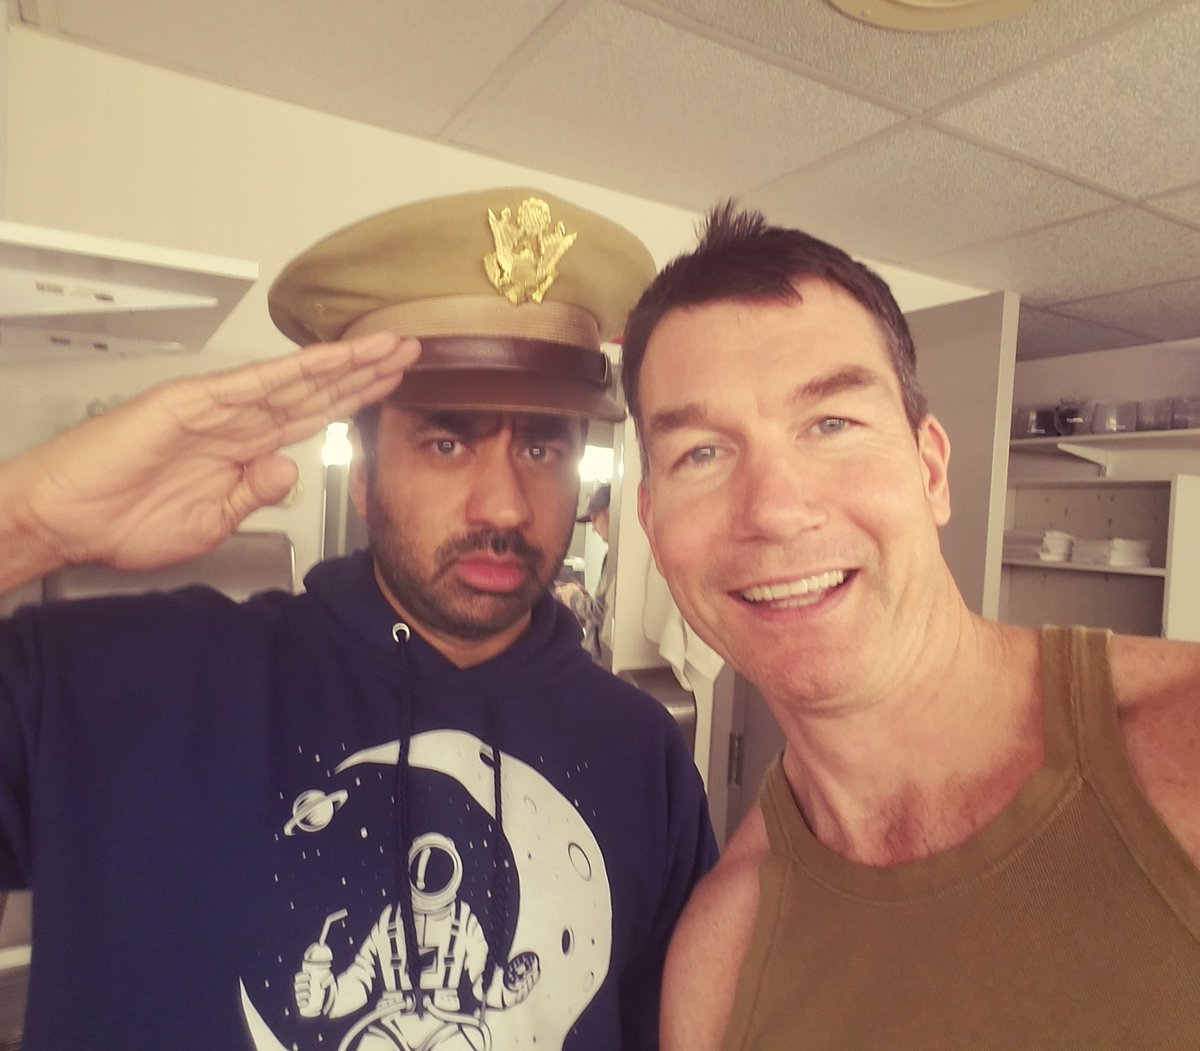 #ASoldiersPlay @kalpenn reporting for duty!